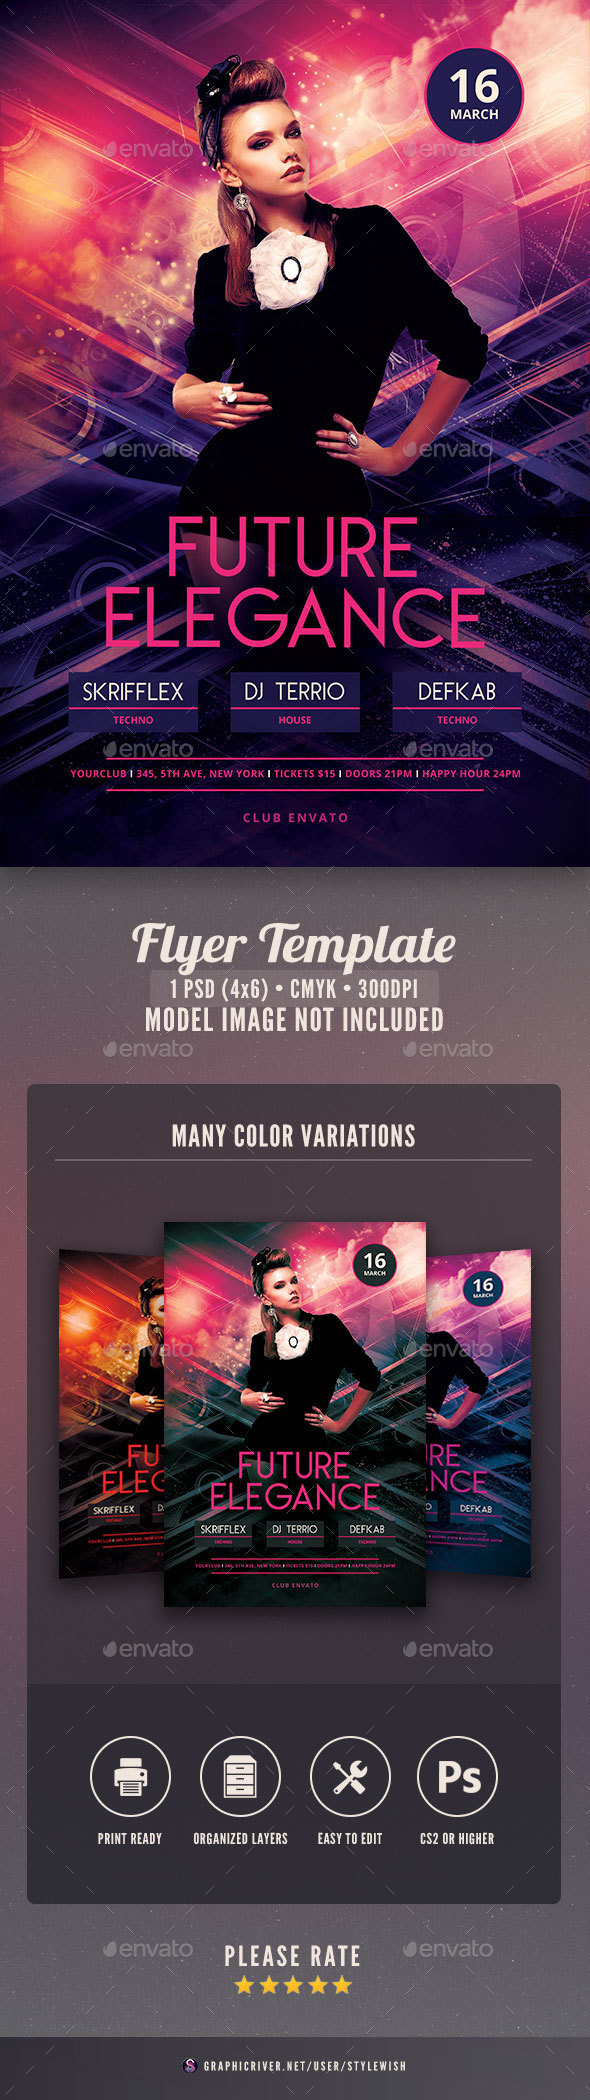 Future Elegance Flyer - Clubs & Parties Events